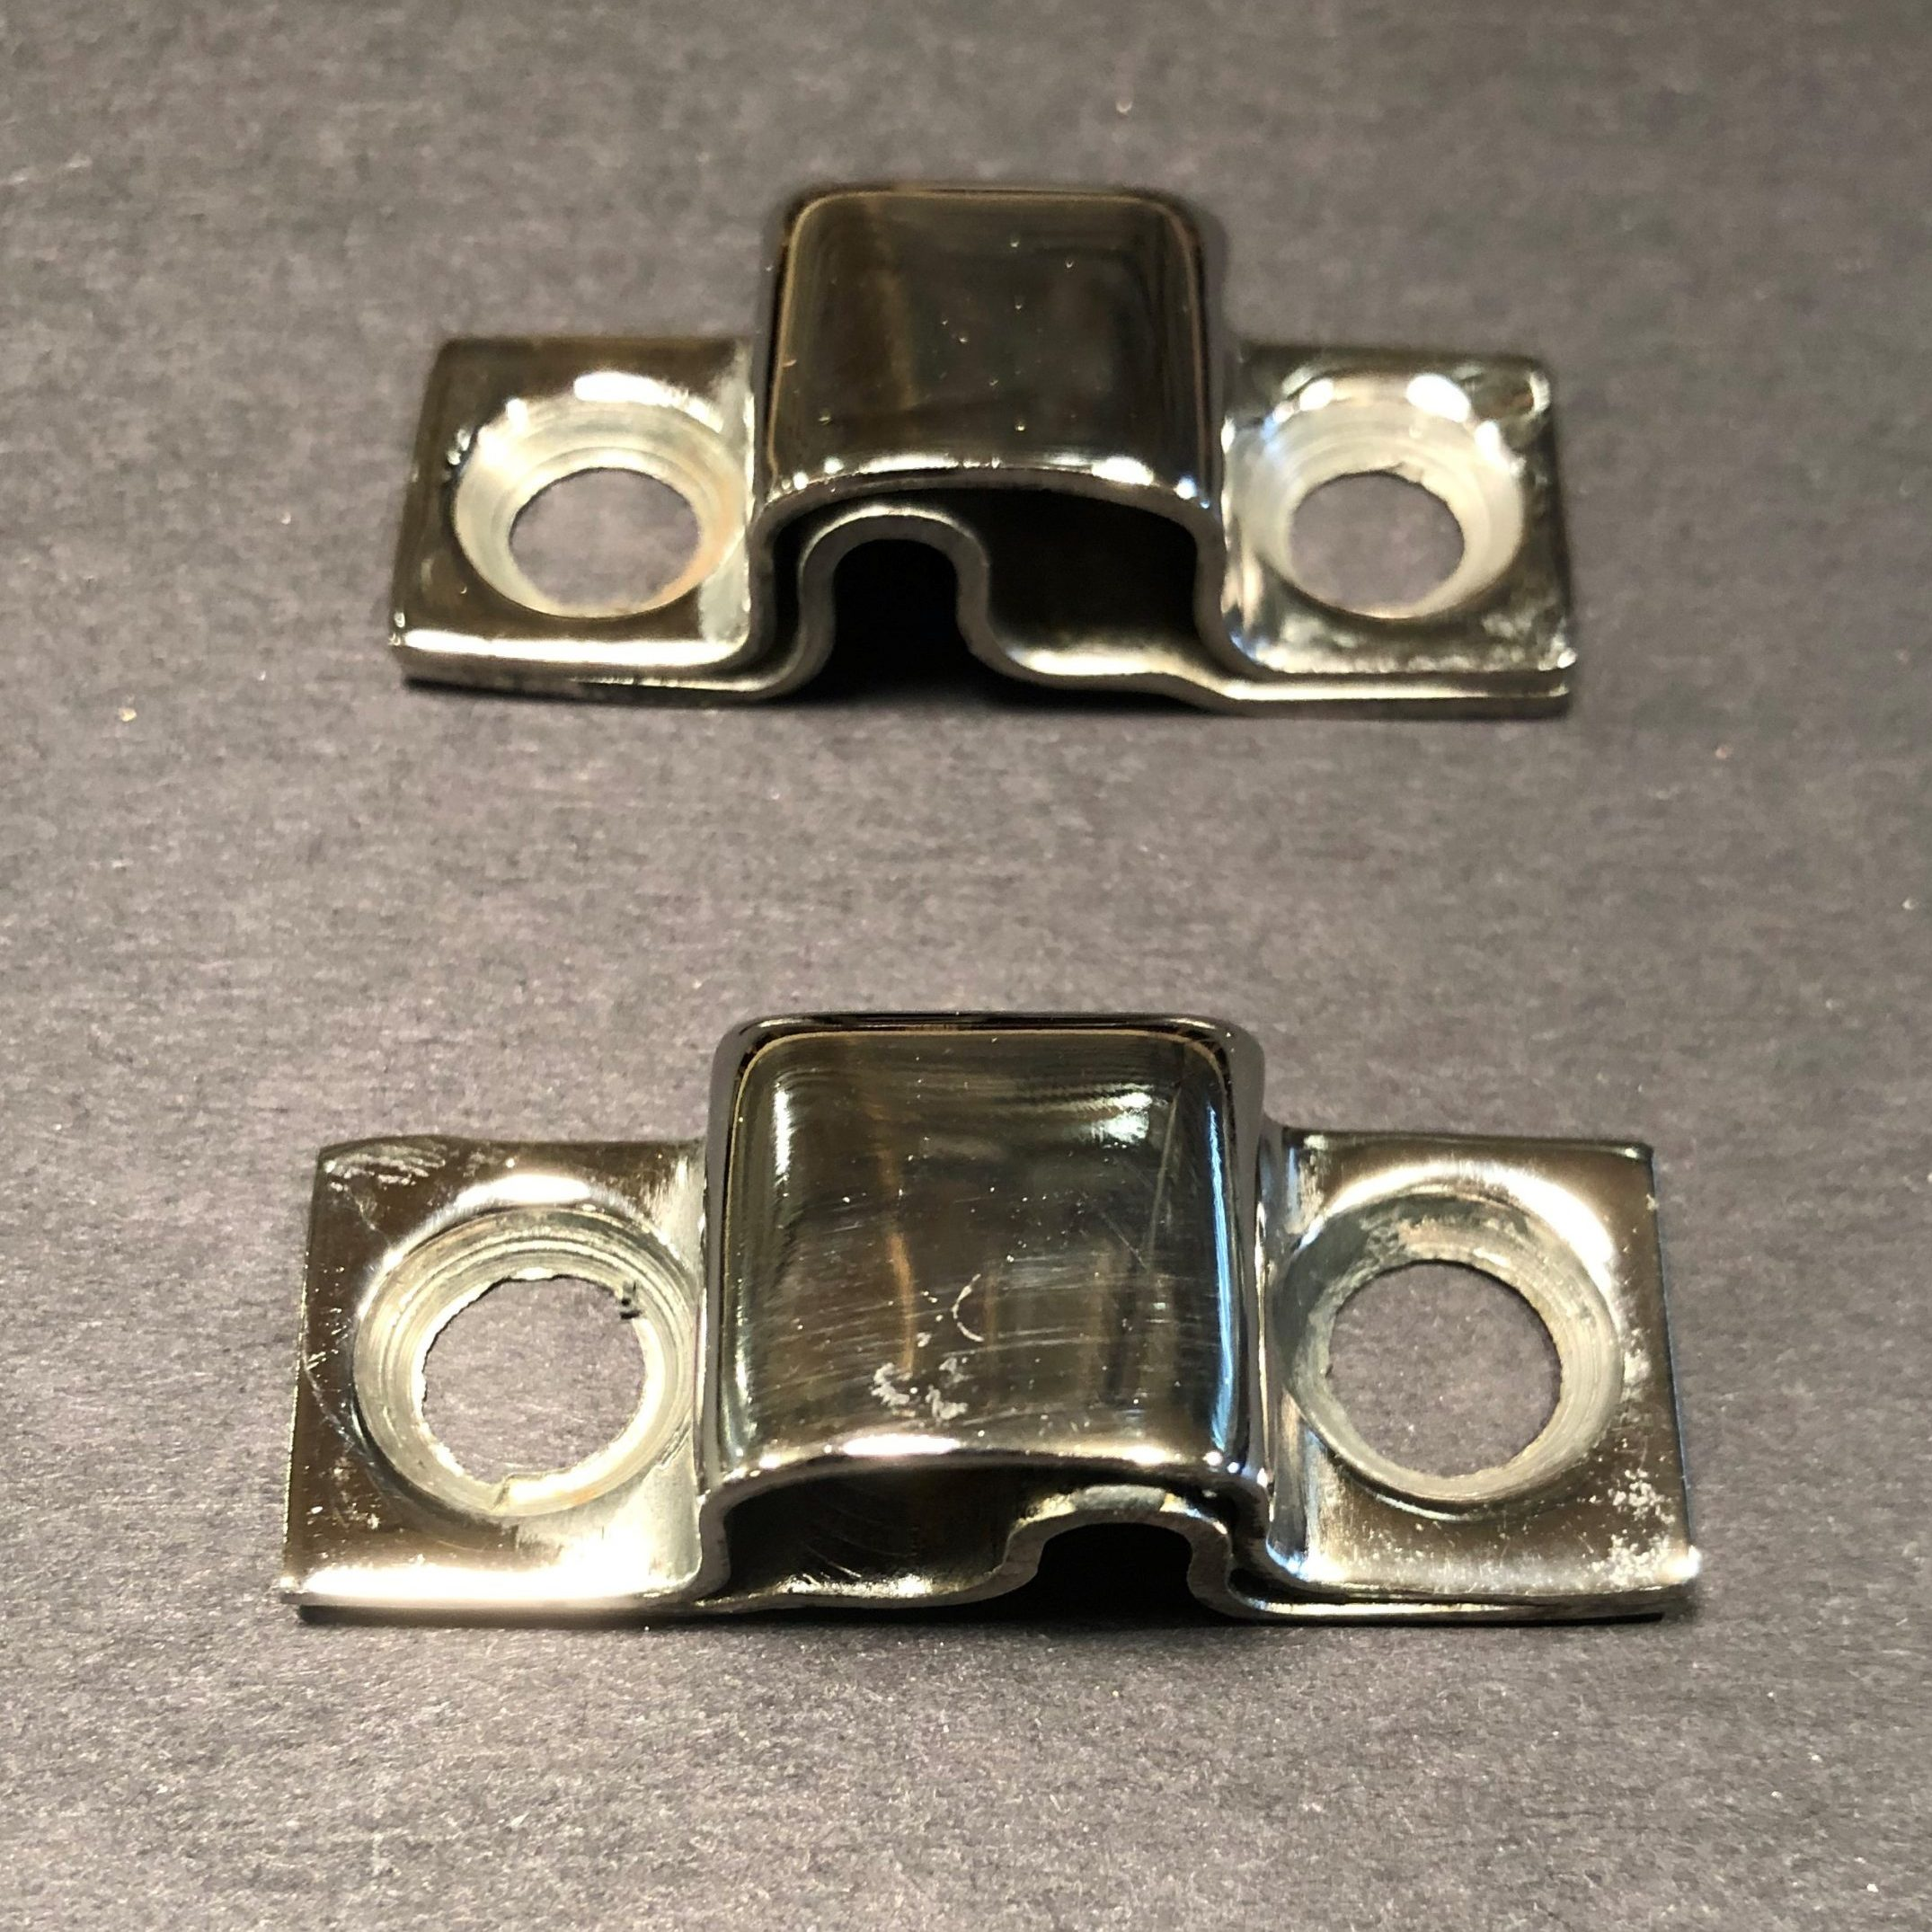 Dodge Truck Front & Rear Hood Hinge Clips – Nickel Plated